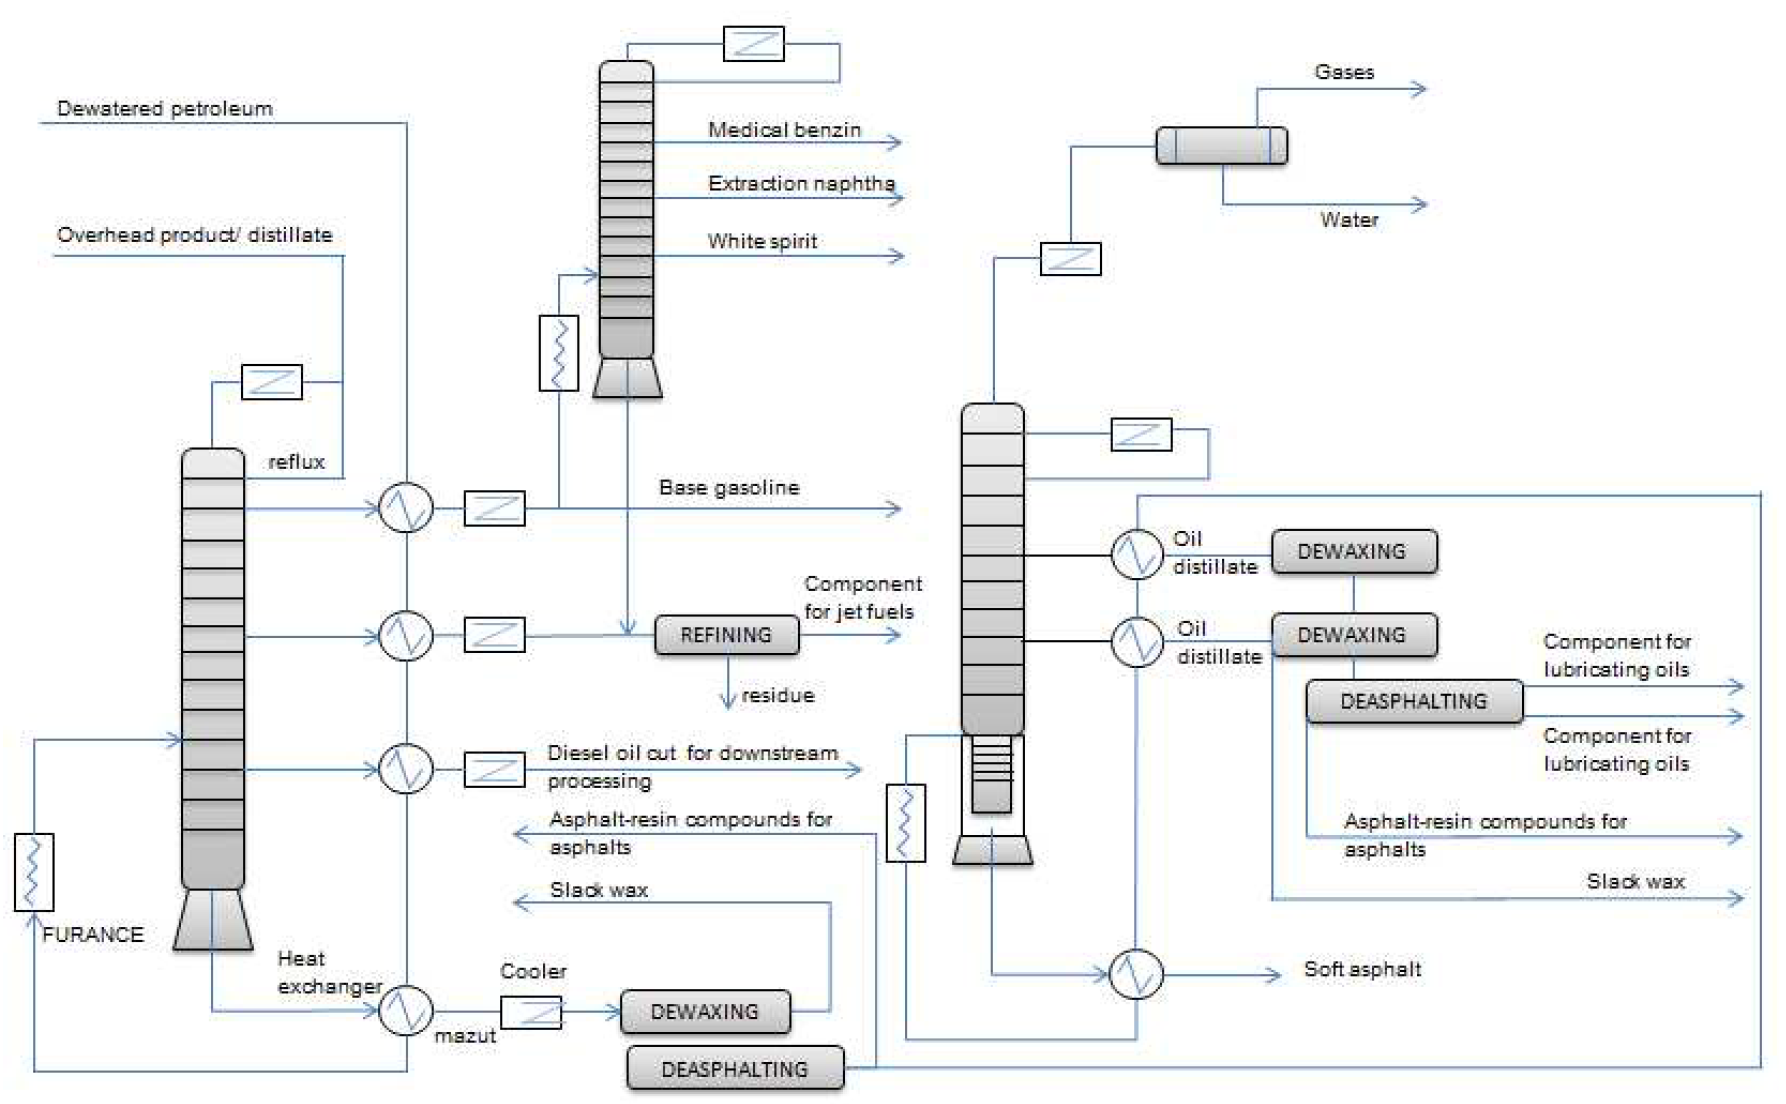 Gas Engine Block Diagram Wiring Diagrams Straight 4 The Influence Of Fuel Manufacturing Processes On Their Rh Intechopen Com Diesel 62